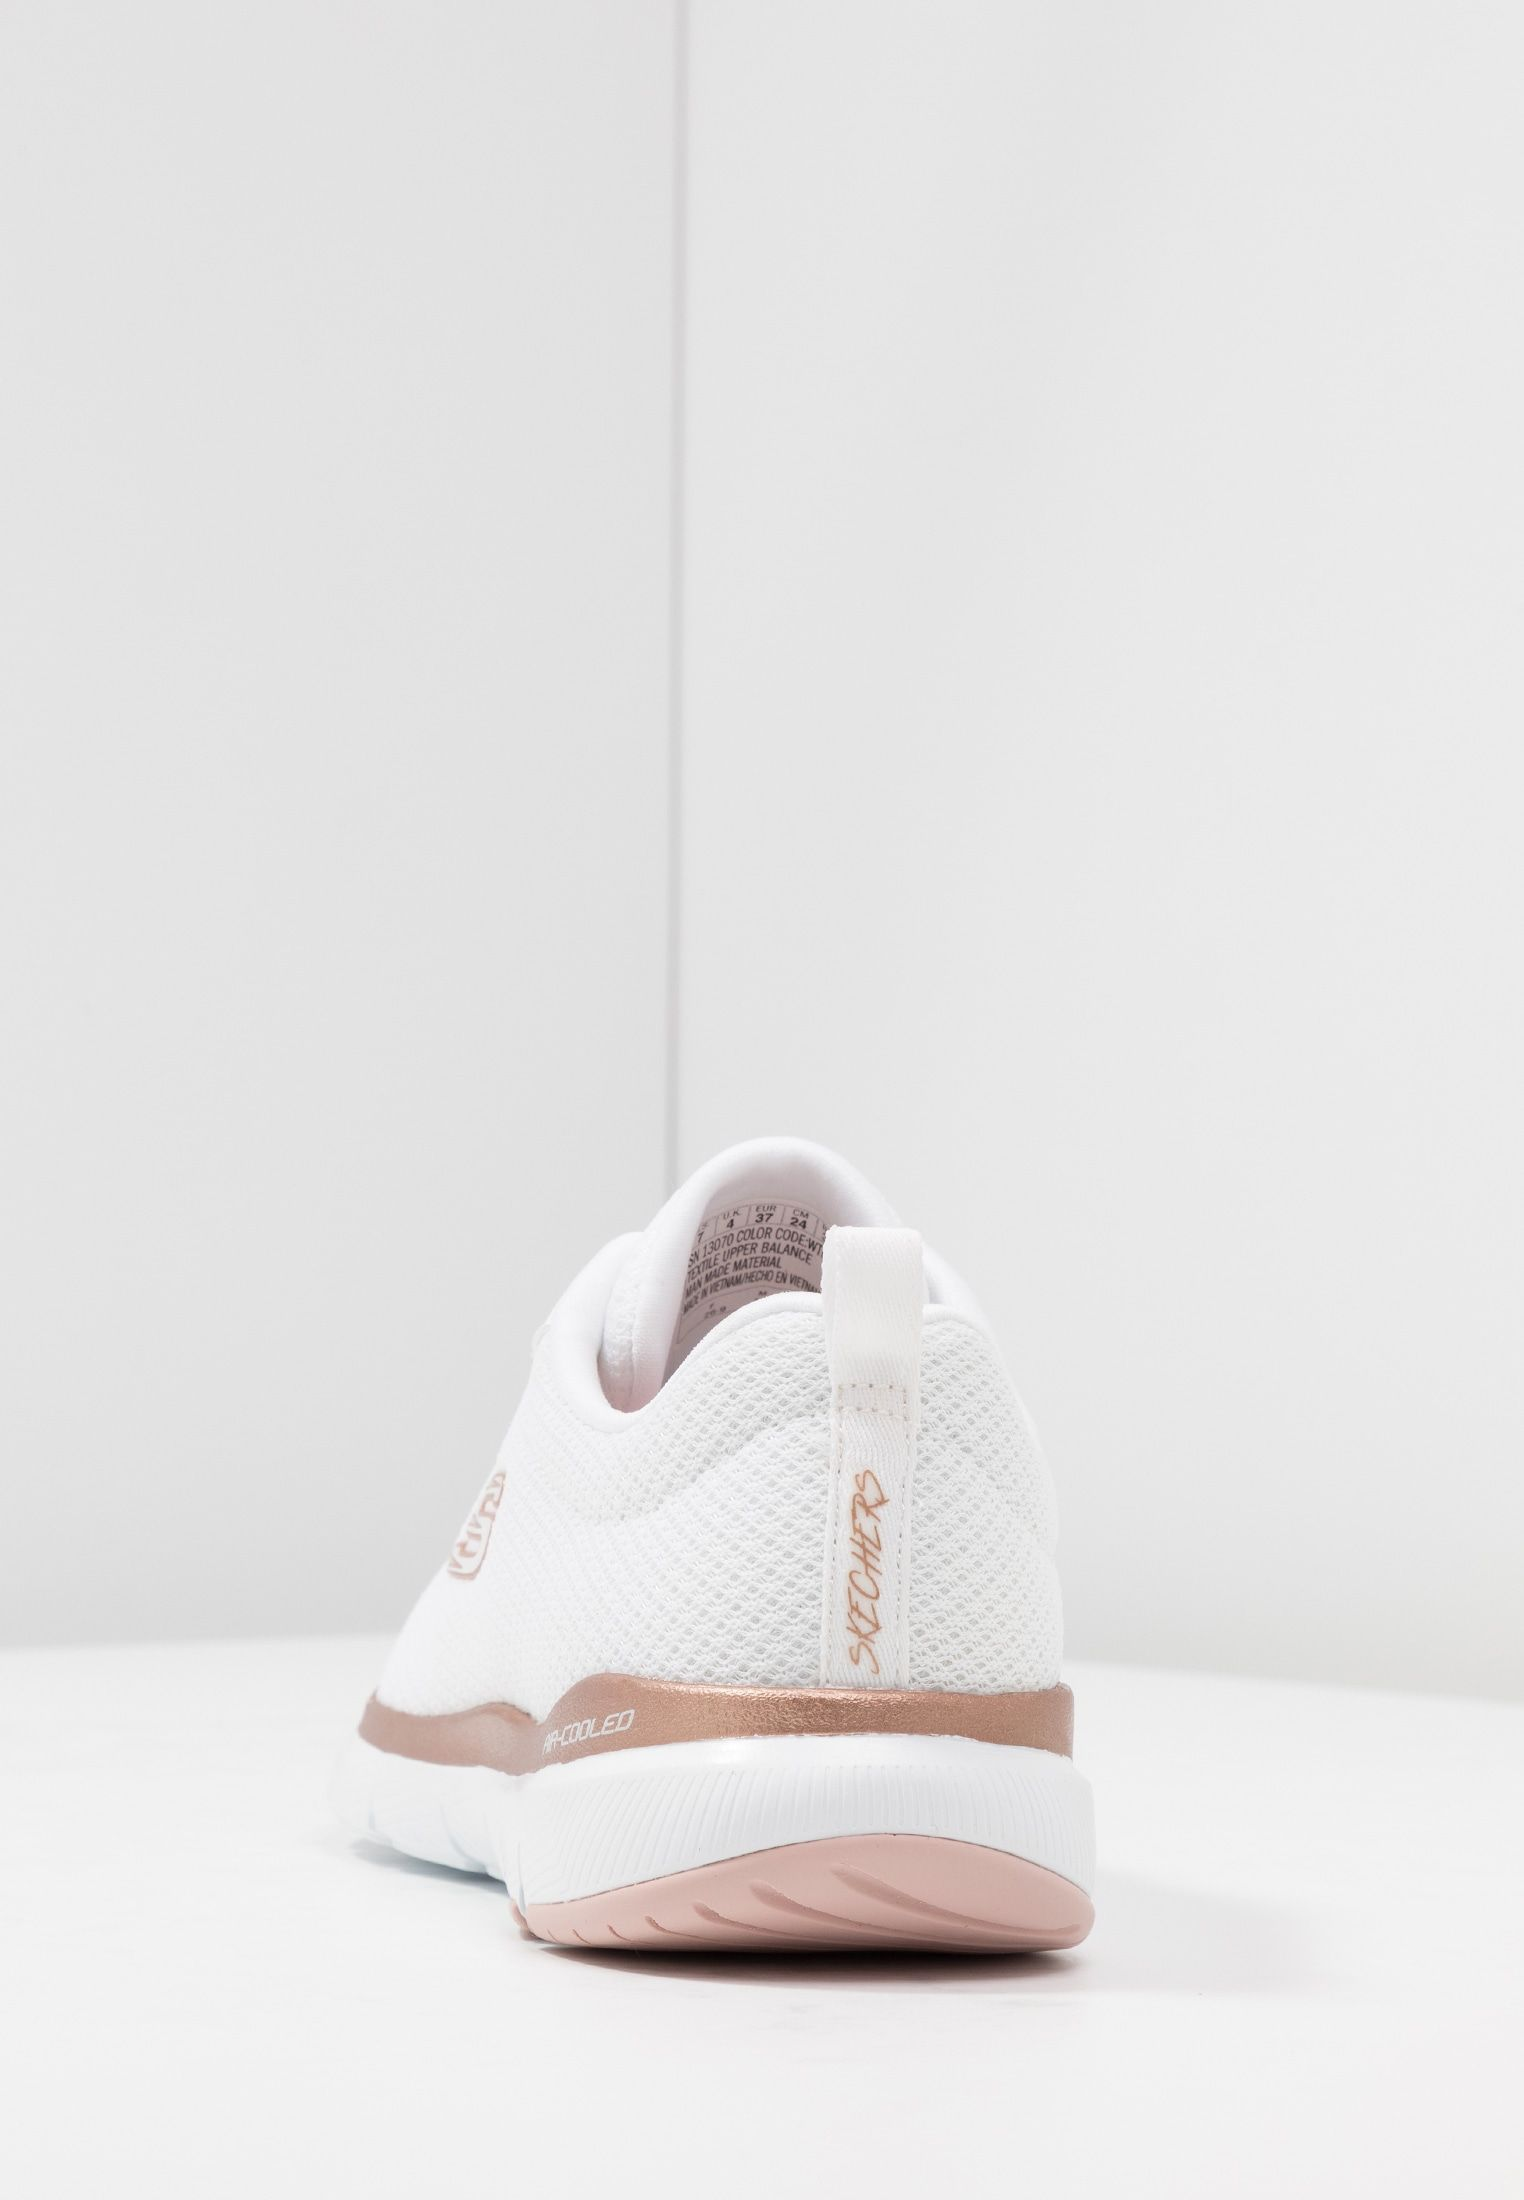 Flex Low Whiterose Sneaker Gold 0 3 Appeal CerdoBx